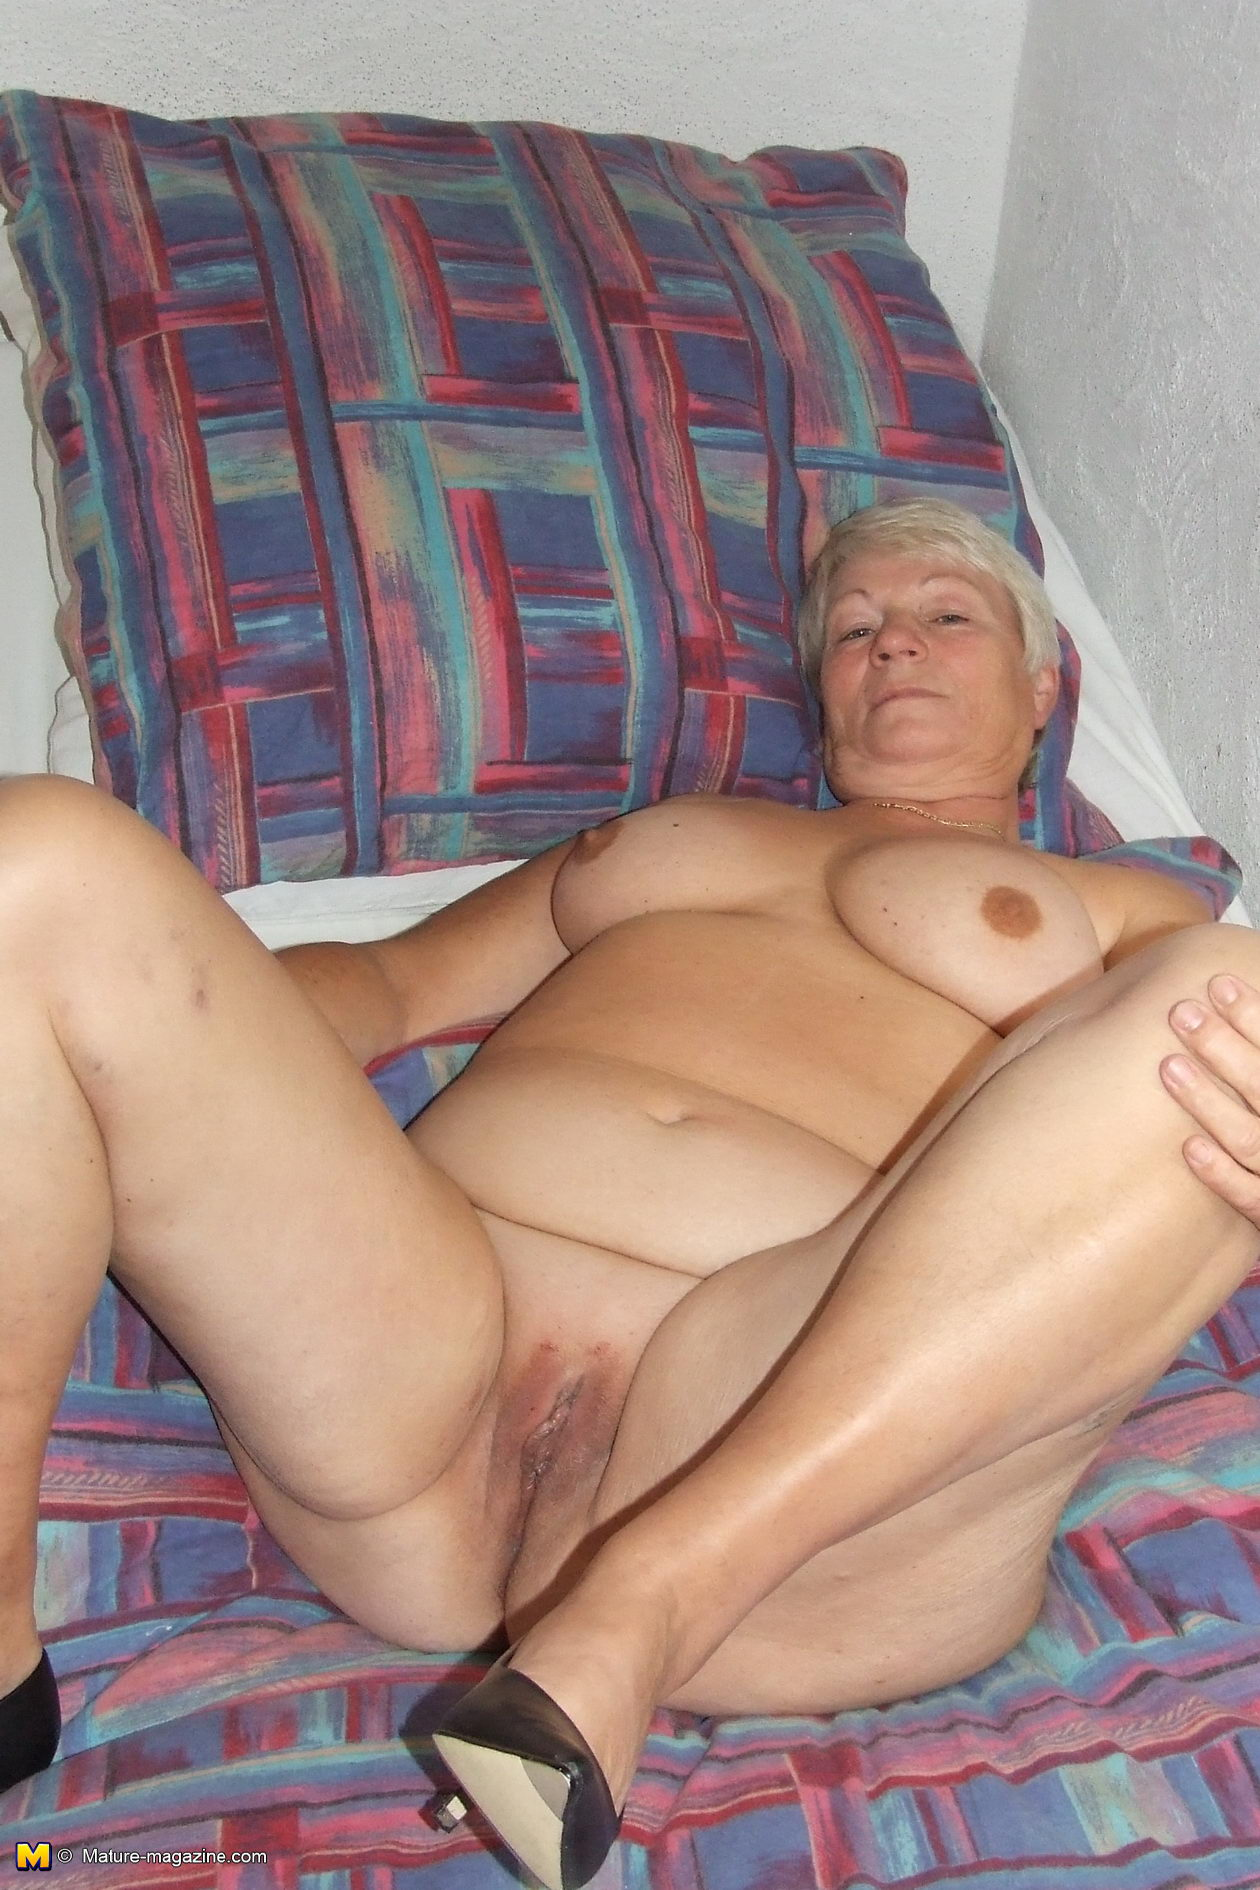 Sexual position woman enjoy most